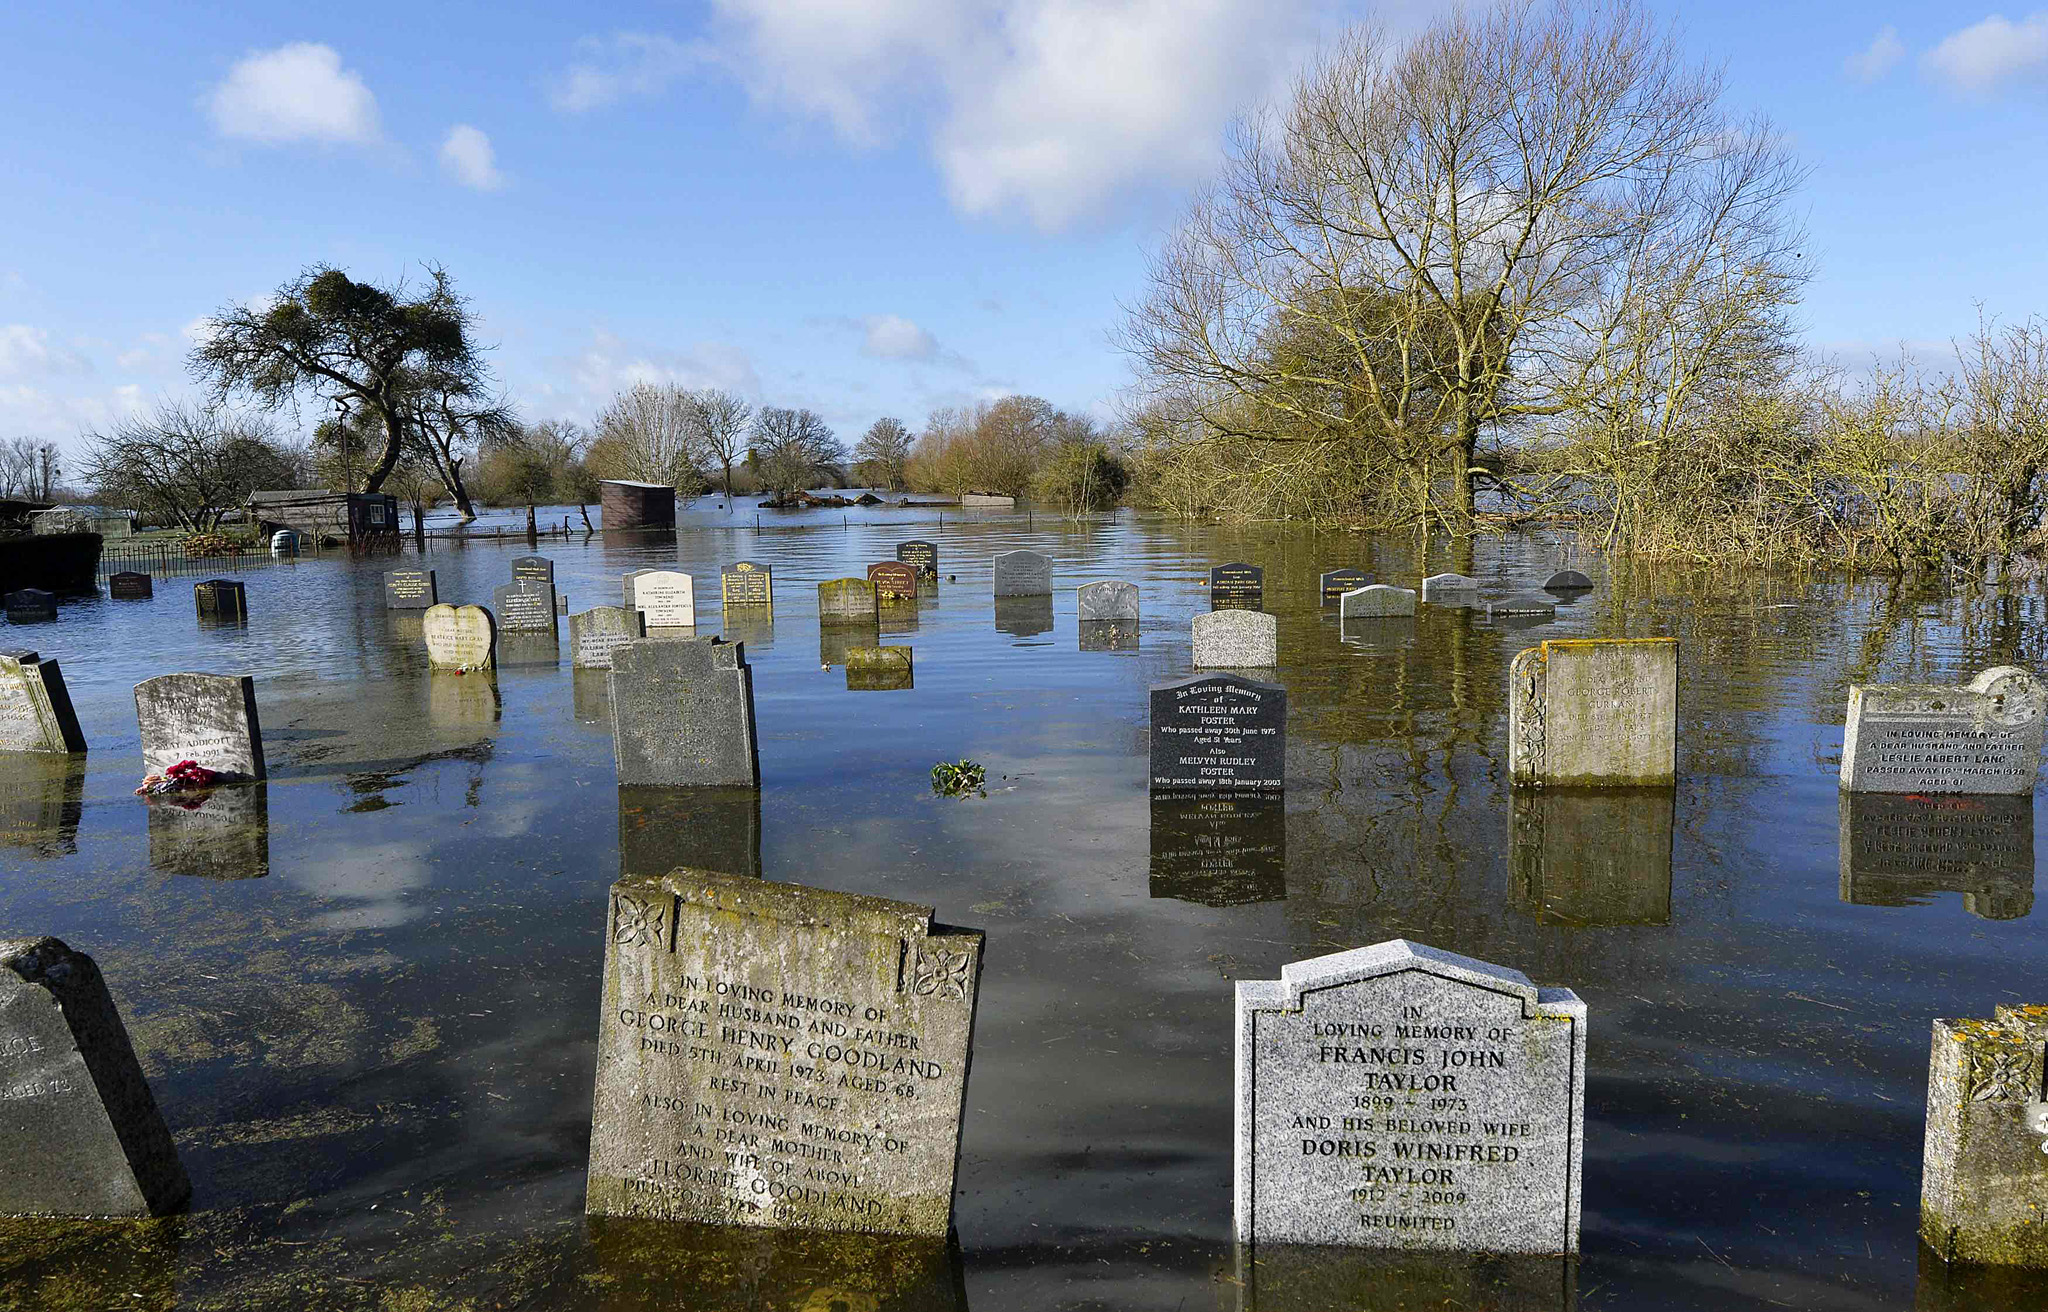 A graveyard is seen underwater in the village of Moorland in south west England...A graveyard is seen underwater in the village of Moorland in south west England February 7, 2014. Many areas of the Somerset Levels have been underwater for over a month in the wettest January in Britain on record. Severe weather warnings for rain and gale force winds have been issued for the weekend. REUTERS/Toby Melville (BRITAIN - Tags: SOCIETY ENVIRONMENT TPX IMAGES OF THE DAY)